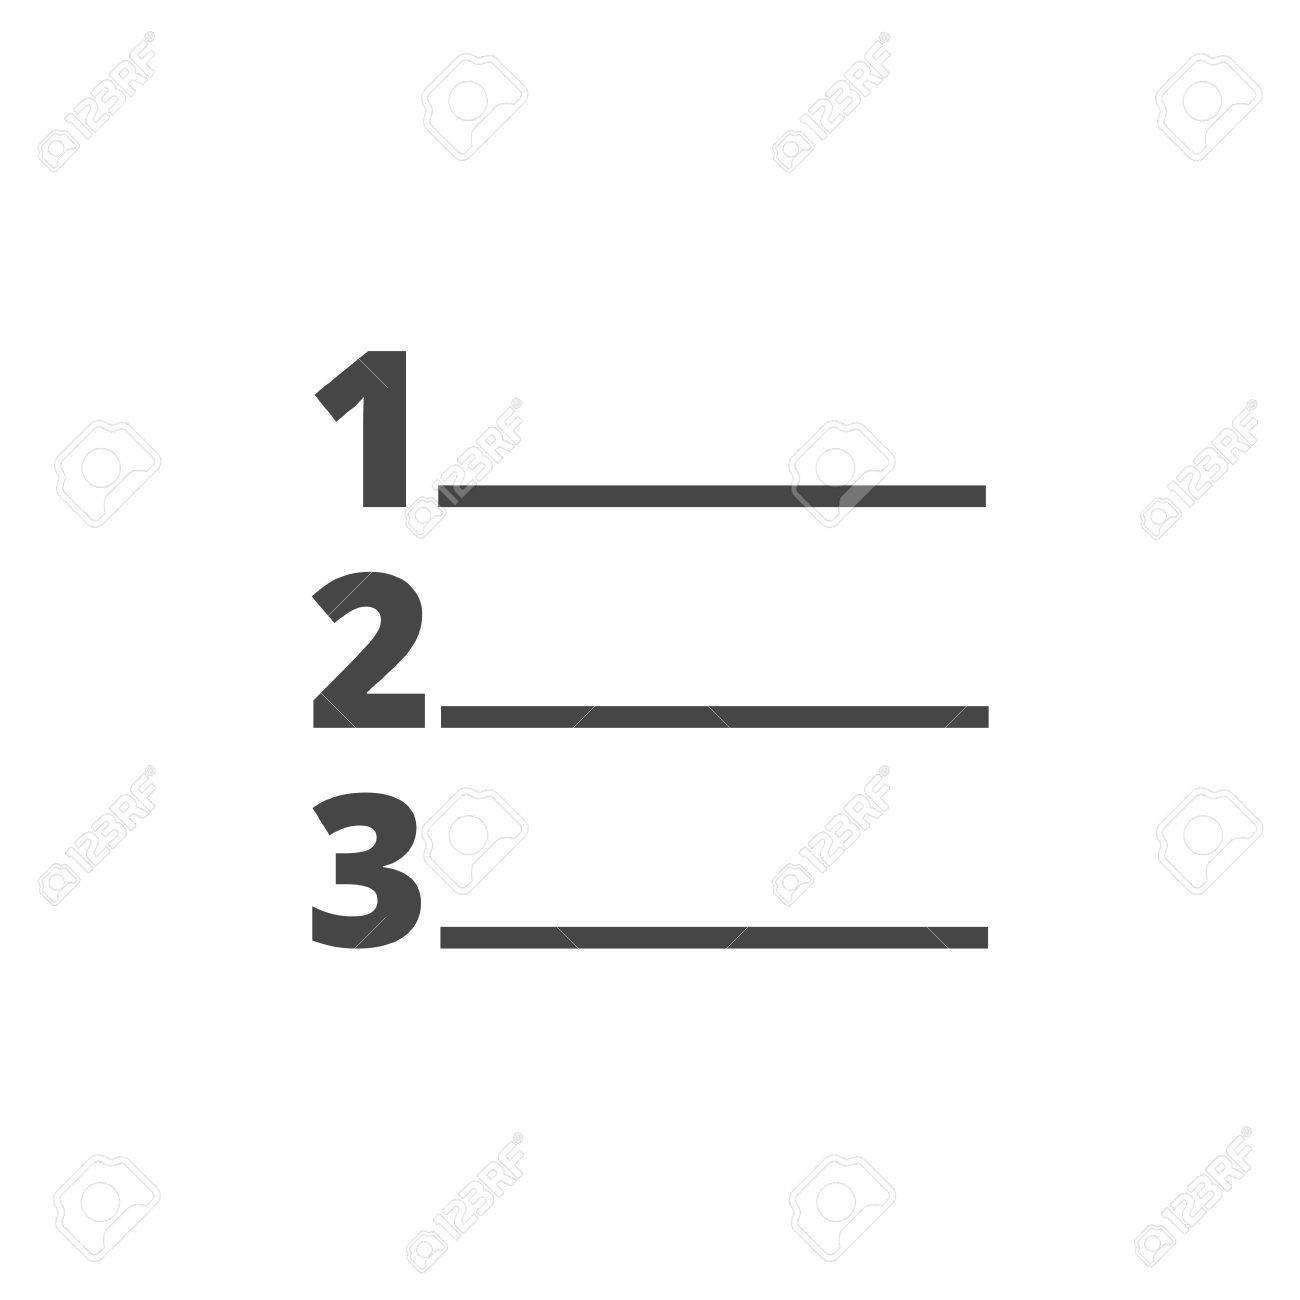 numbered list icon royalty free cliparts, vectors, and stock